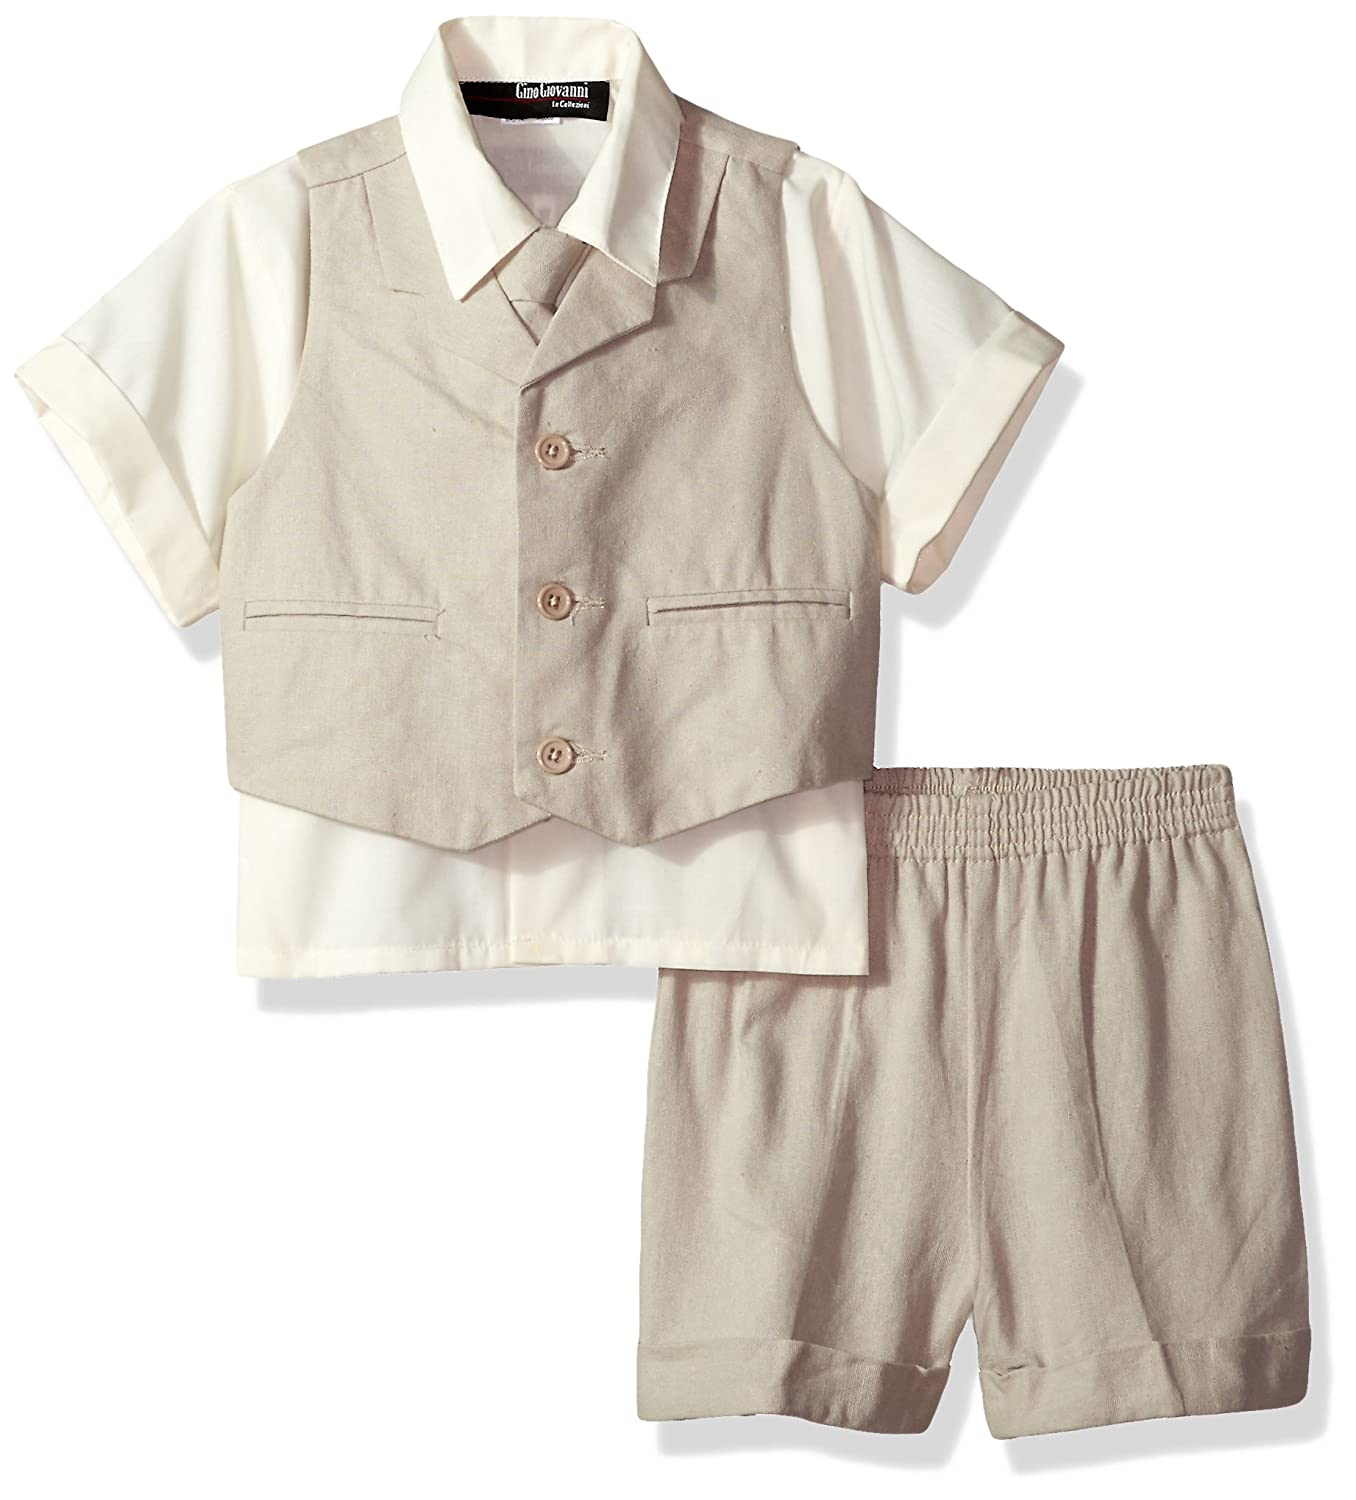 Gino Giovanni Baby and Toddler Boy Summer Cotton//Linen Blend Suit Vest Short Set